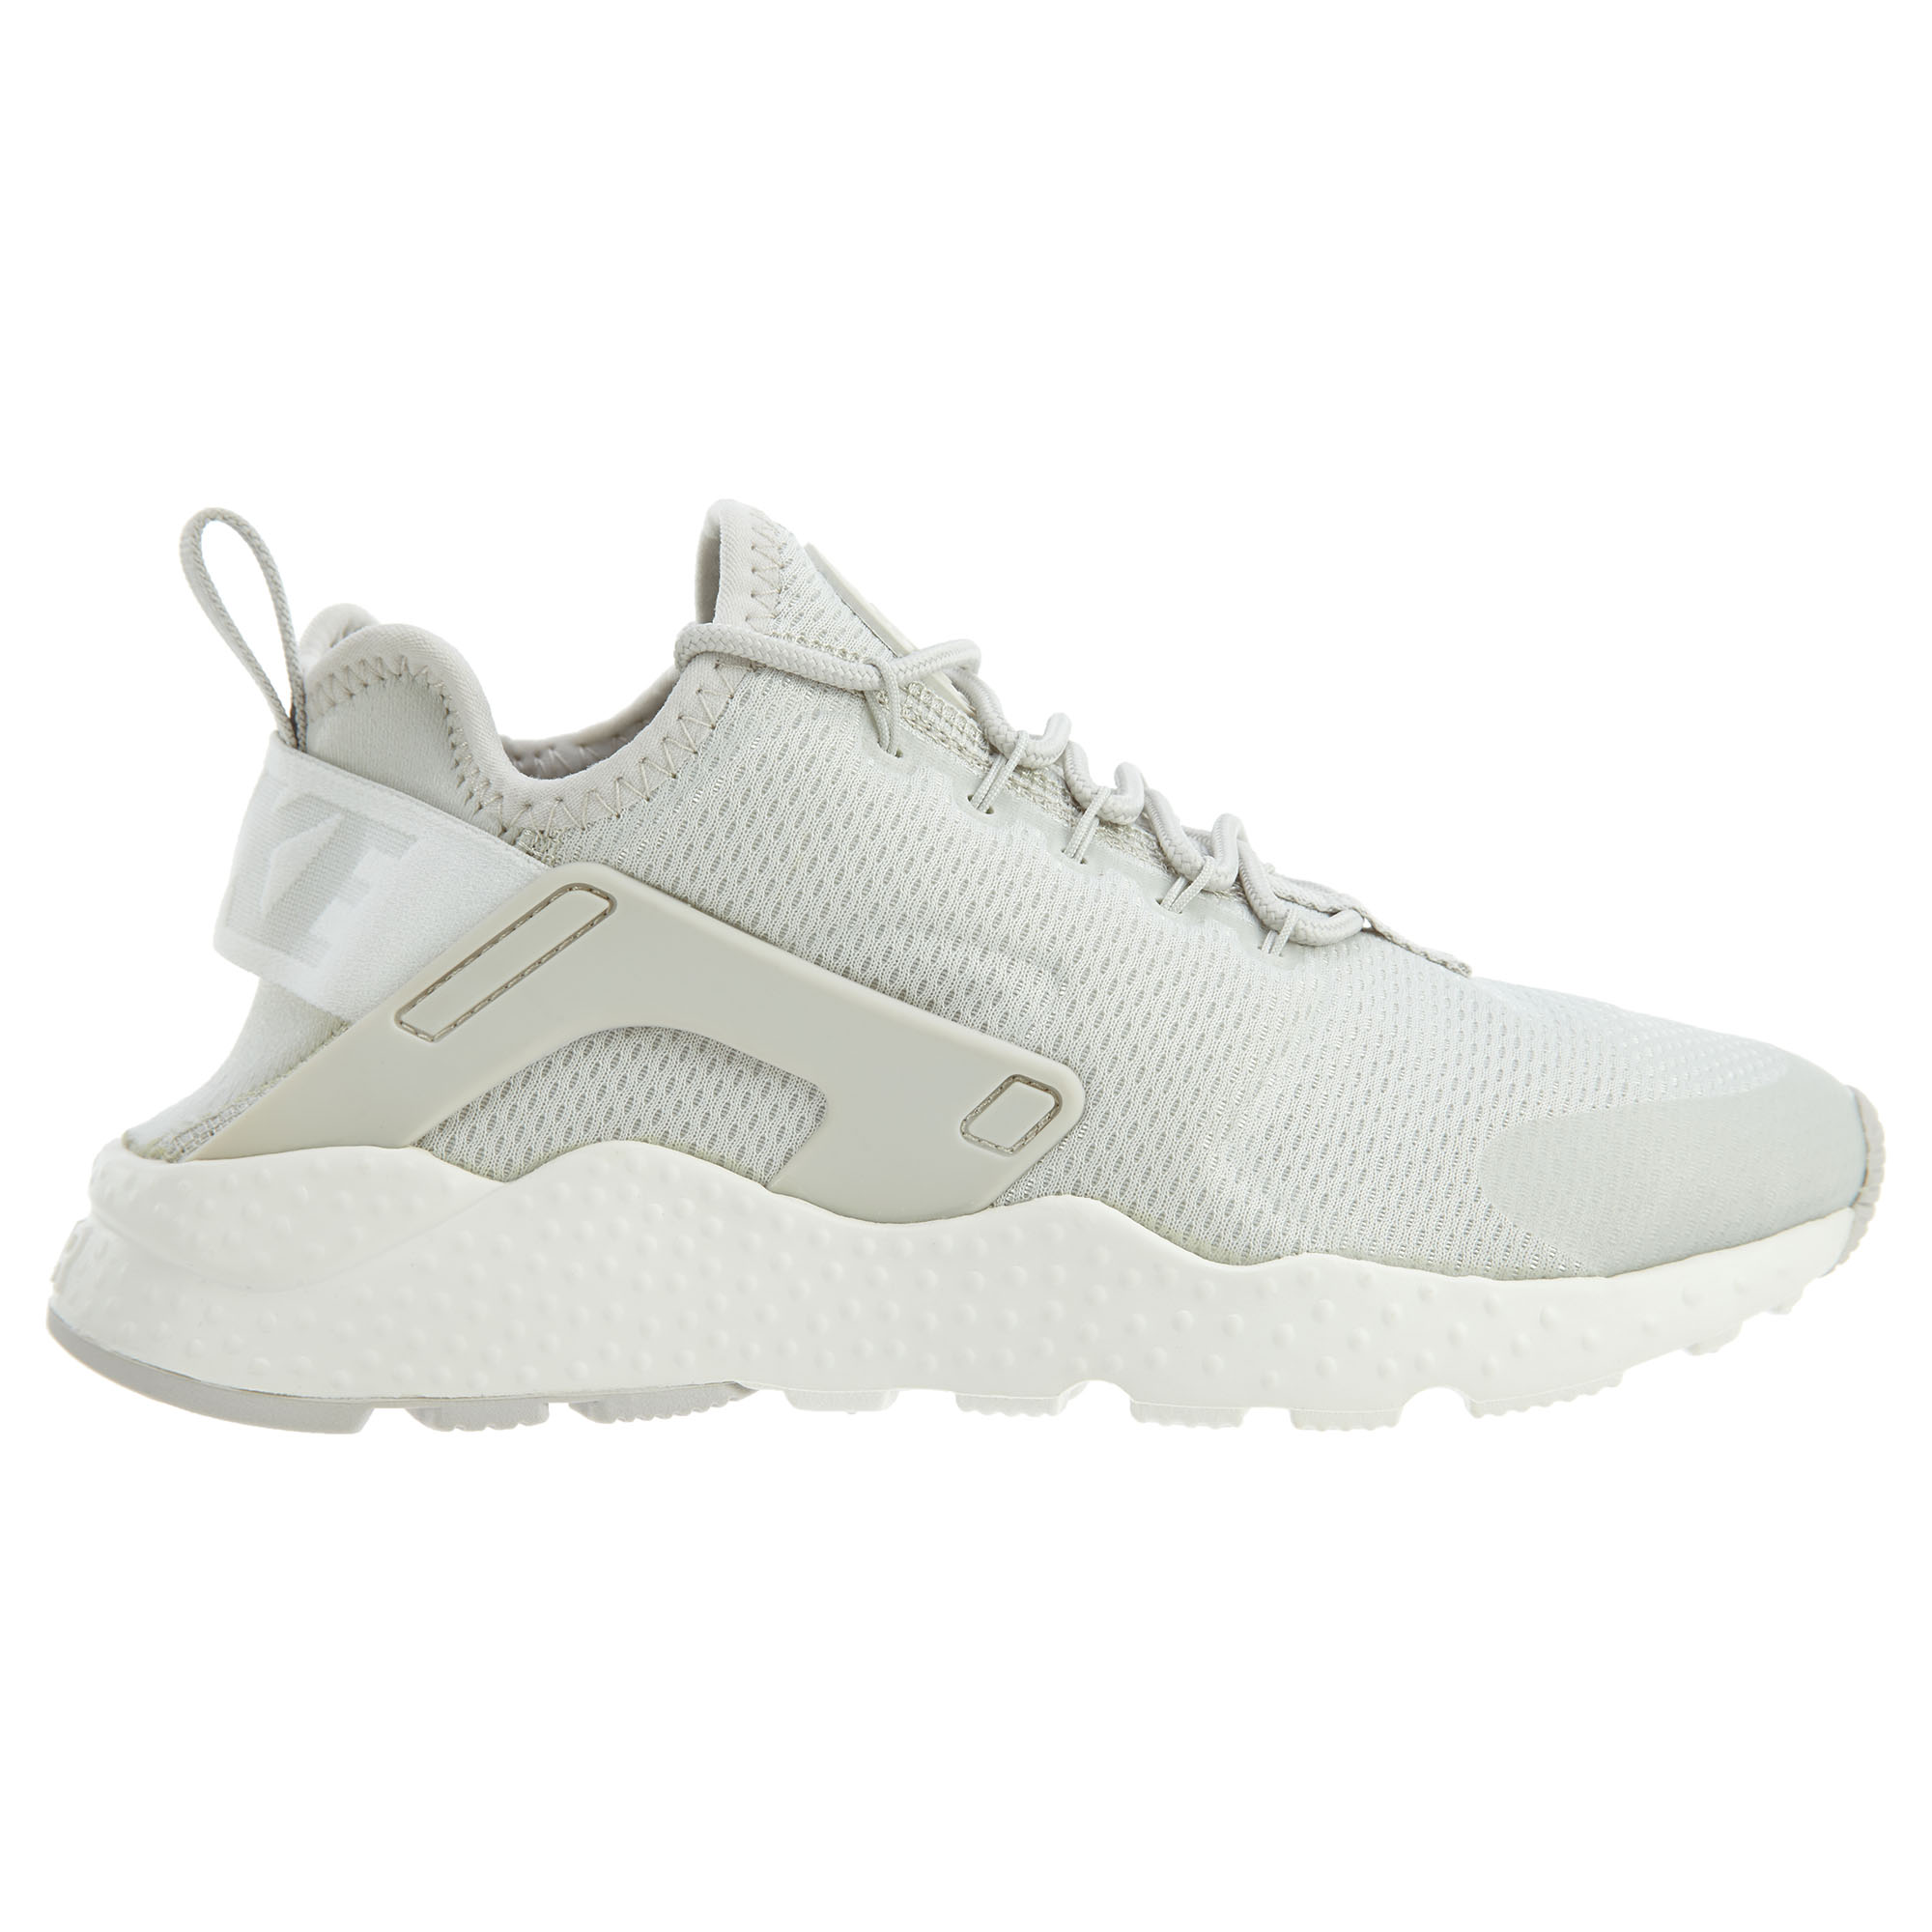 Nike Air Huarache Run Ultra Light Bone Light Bone Sail (W)